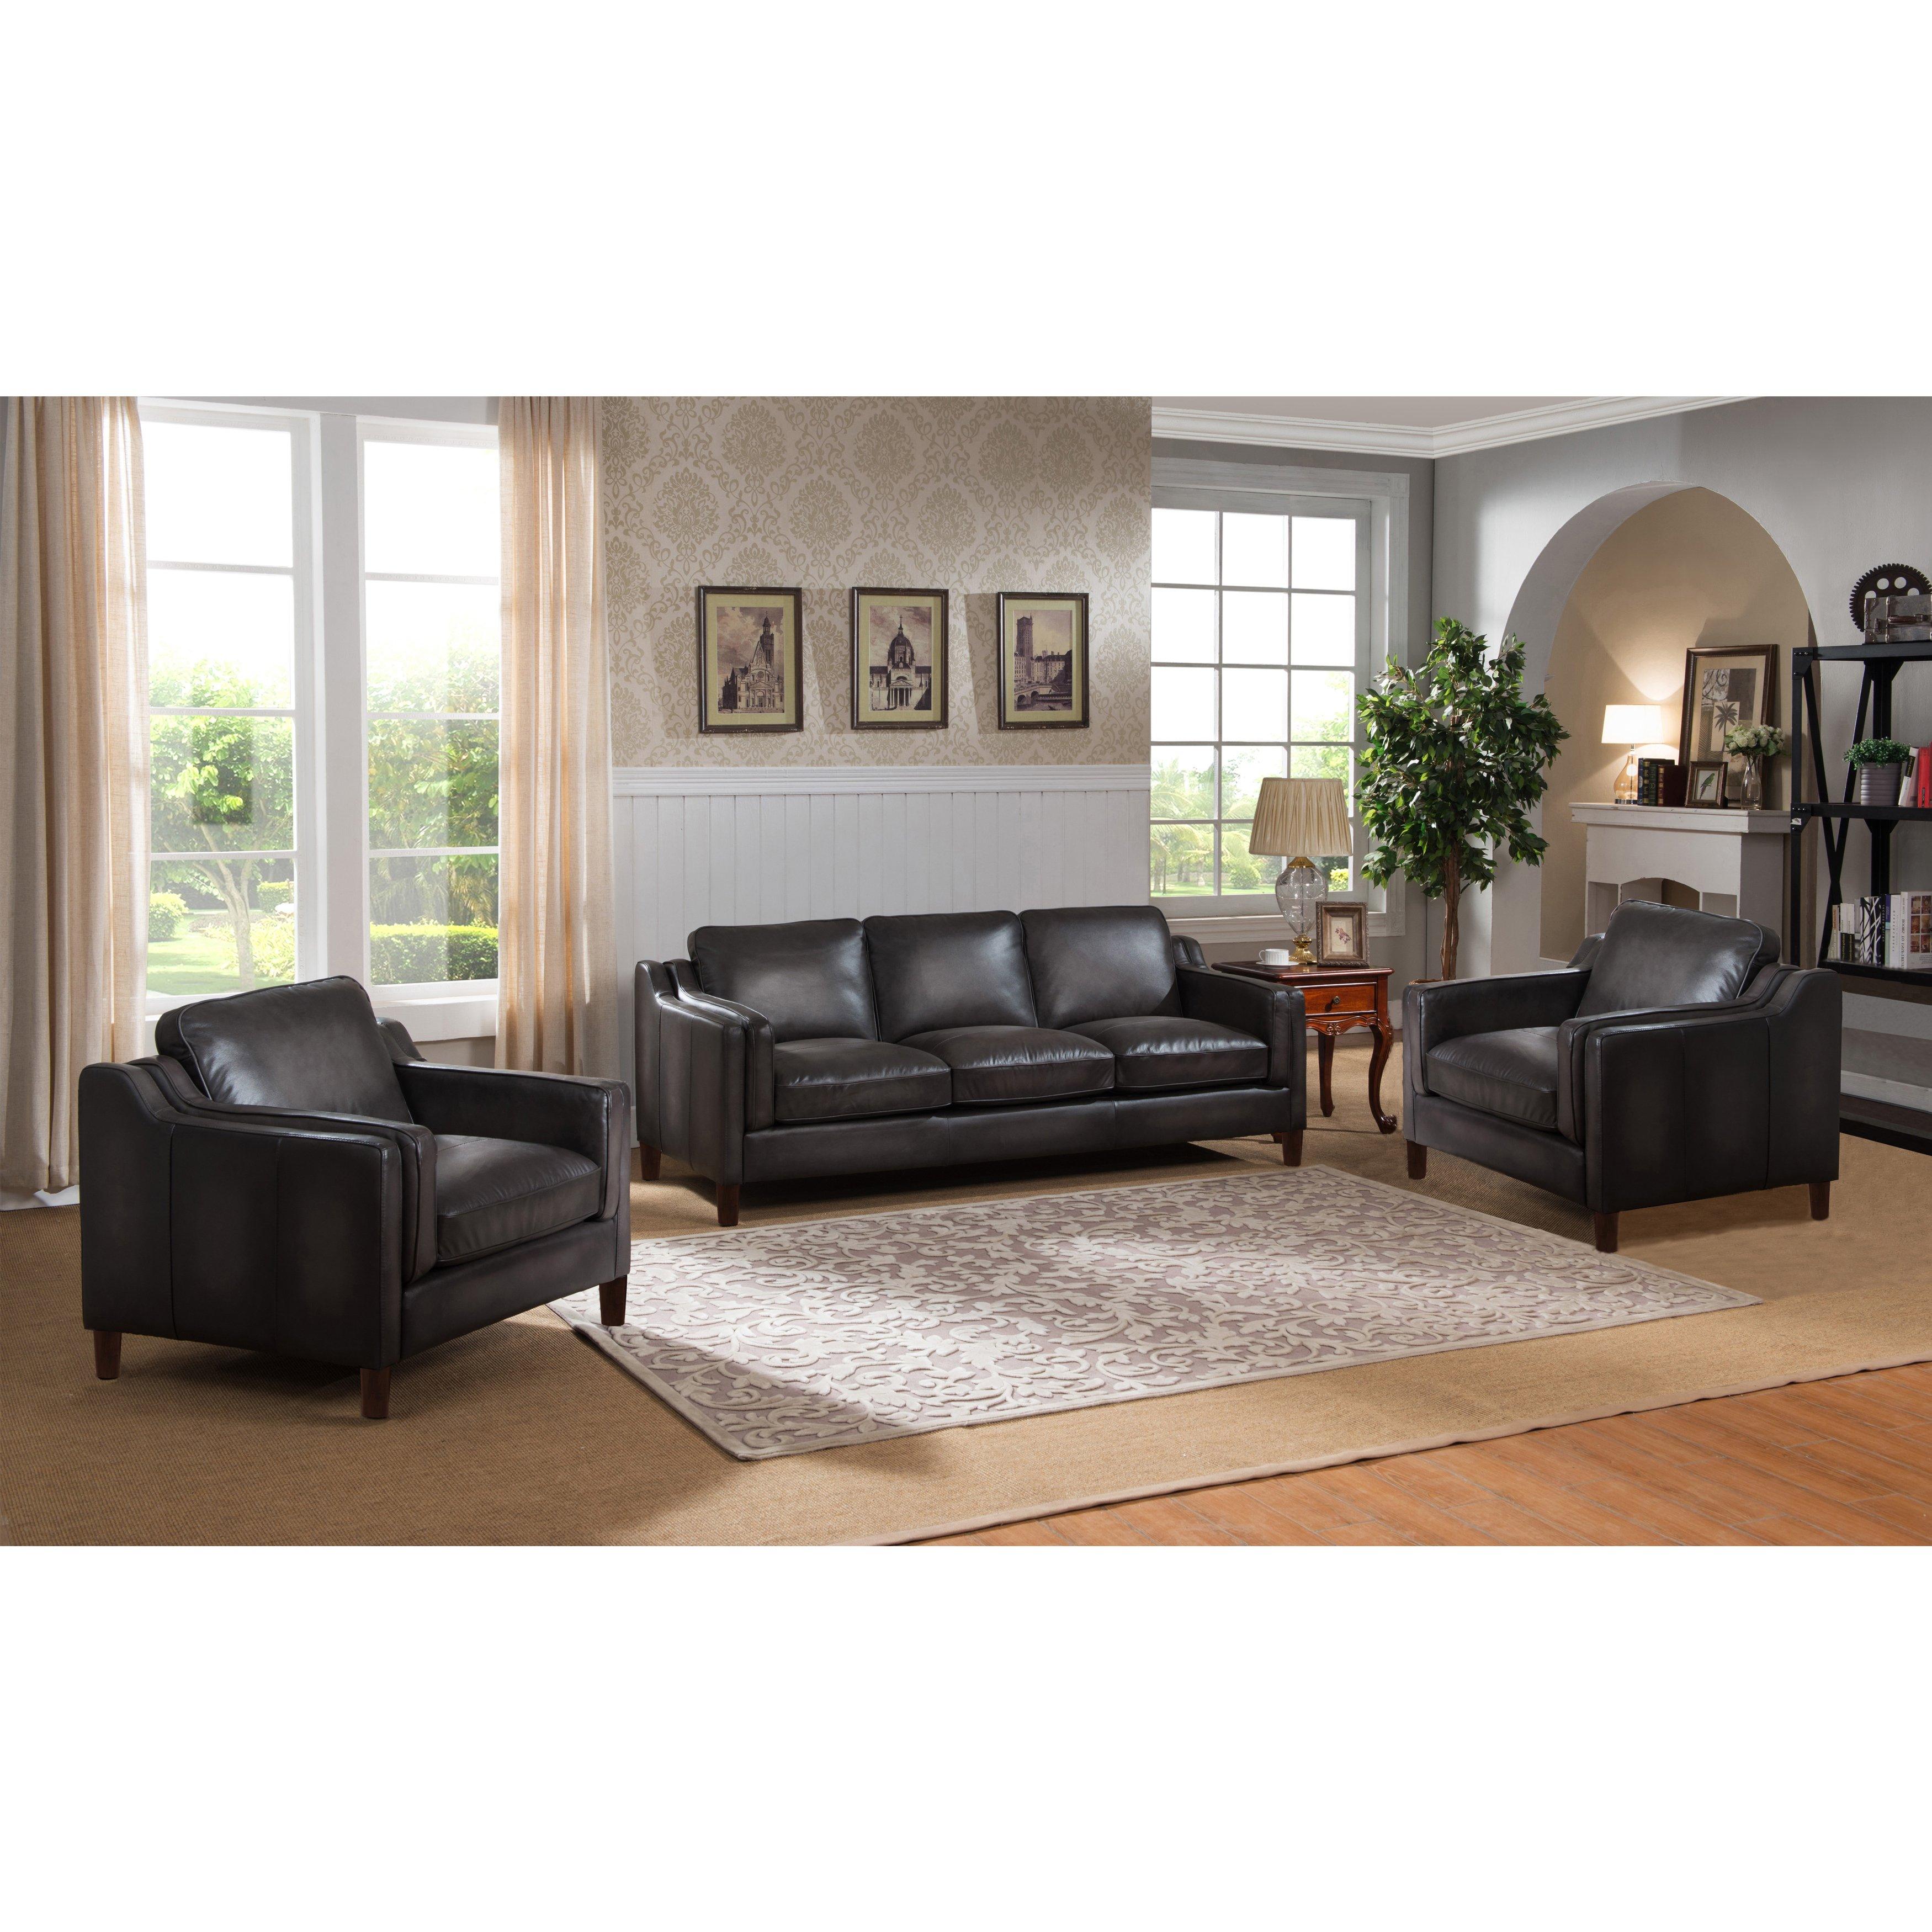 Shop Ames Premium Hand Rubbed Grey Top Grain Leather Sofa And Two Pertaining To Ames Arm Sofa Chairs (View 6 of 25)